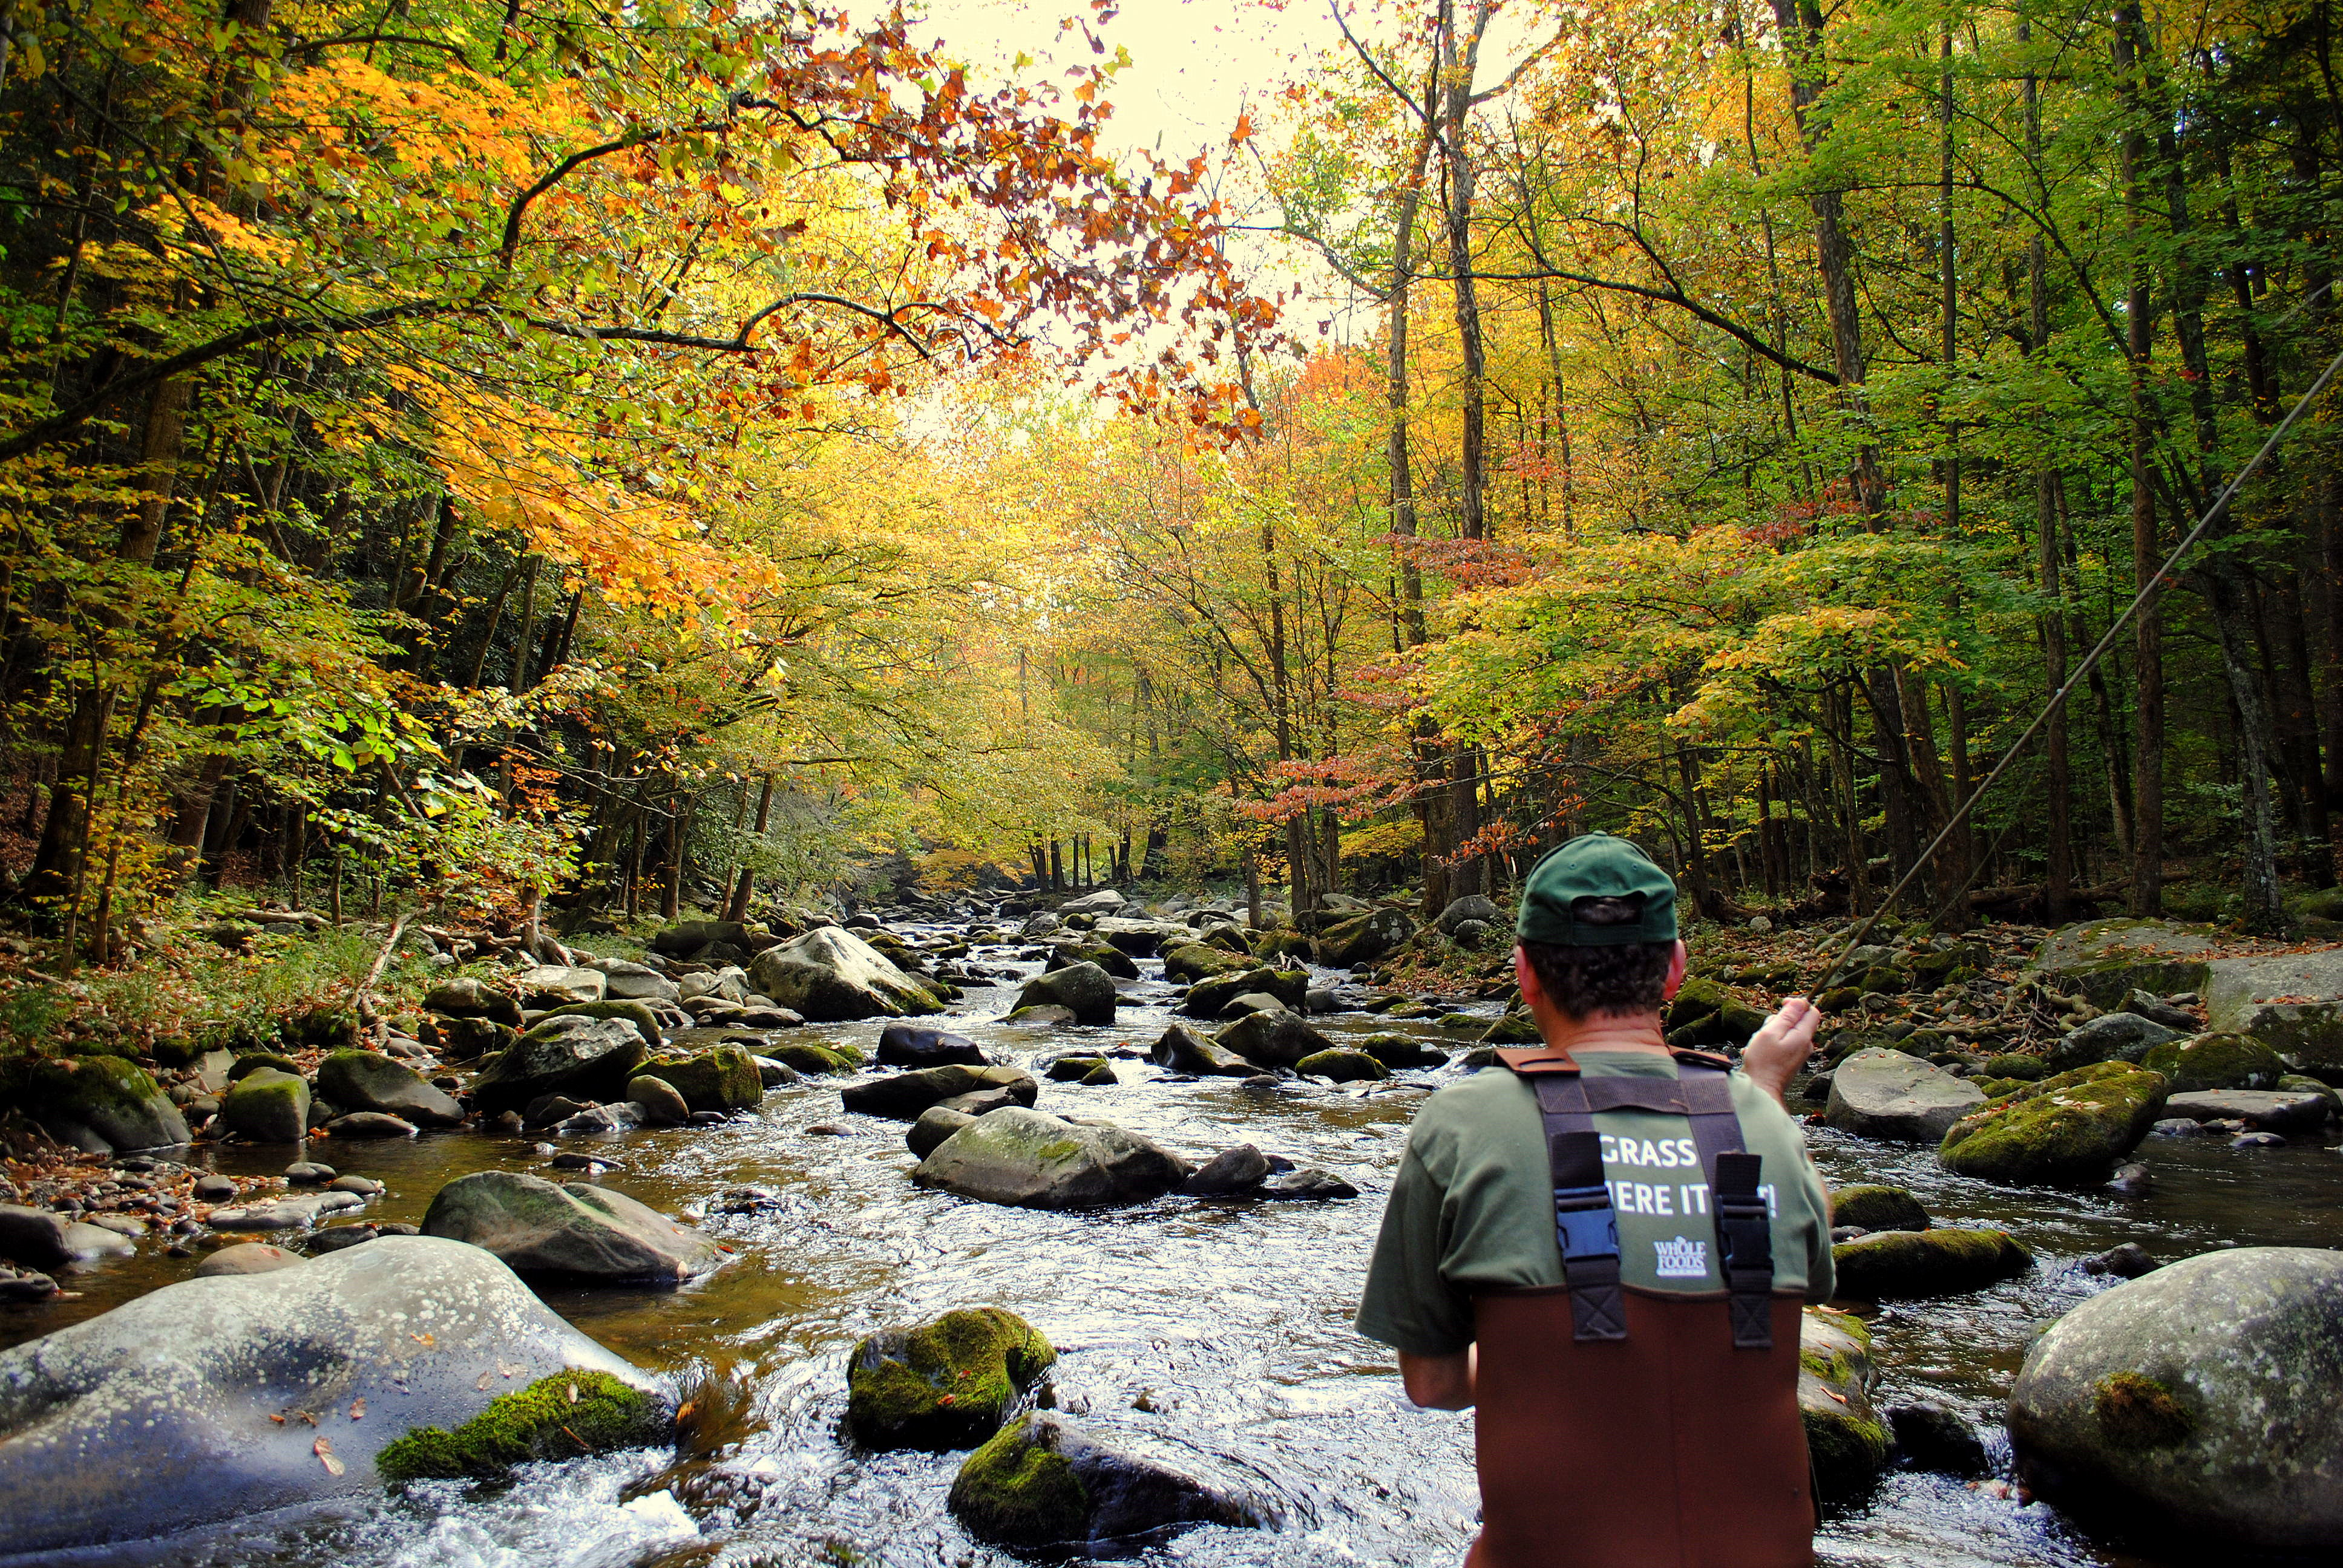 Smoky mountain fly fishing destinations guided trout for Fishing in gatlinburg tn